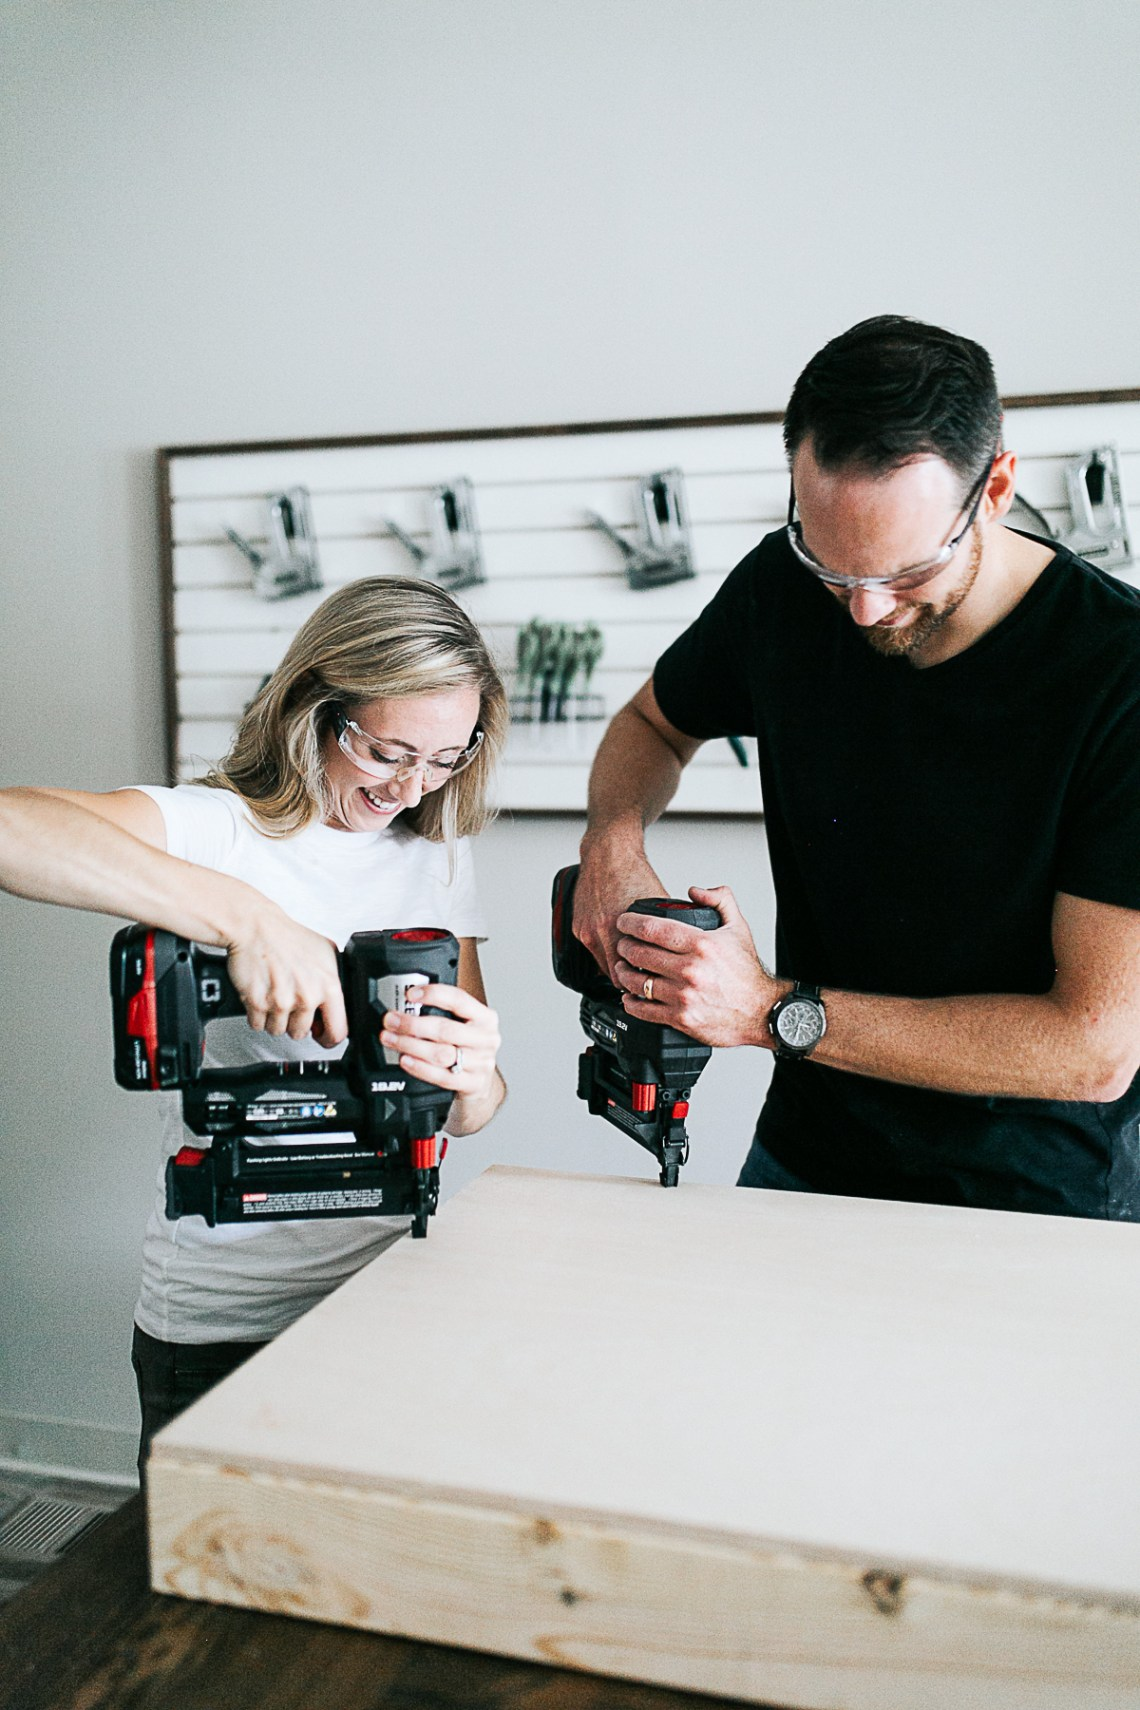 Join us for a 3 hour crash course in all things DIY for the home! November 1st from 6-9pm at Projects in Person in Hopkins, MN. Click for event details!